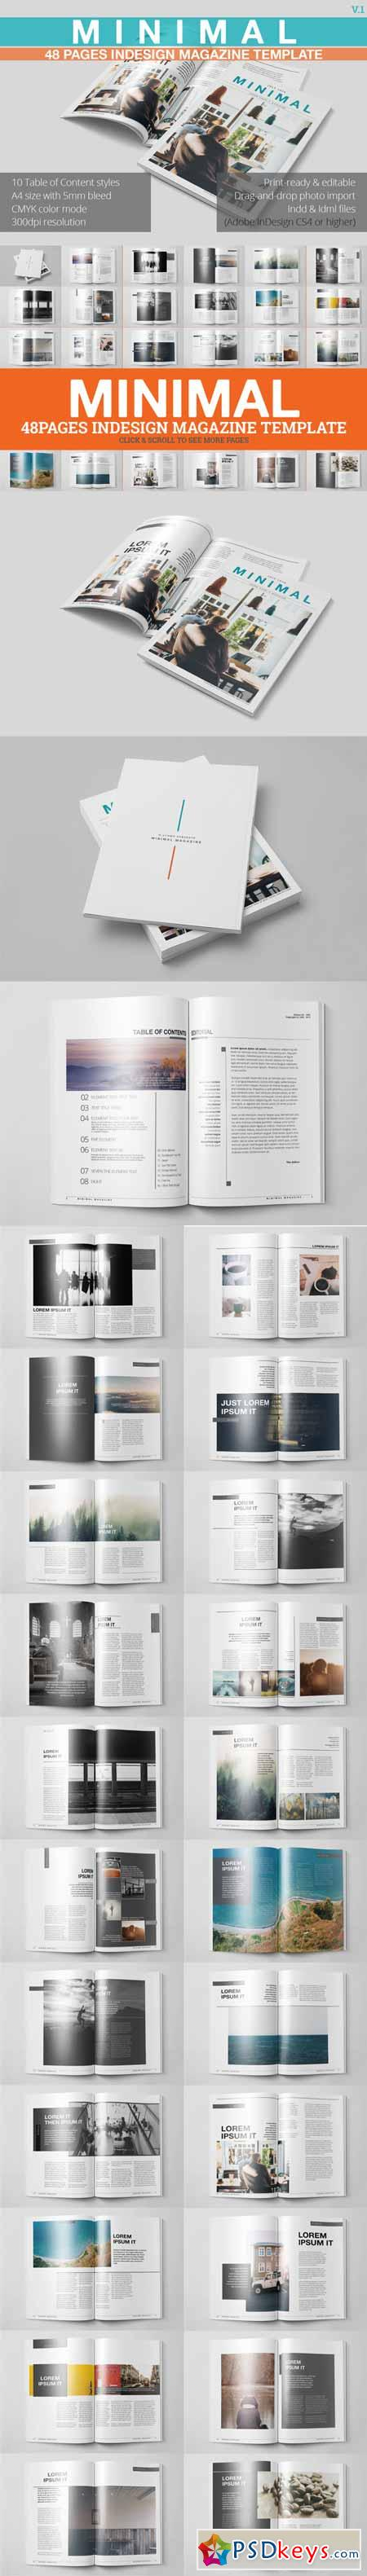 Minimal Magazine Template 453518 » Free Download Photoshop Vector ...